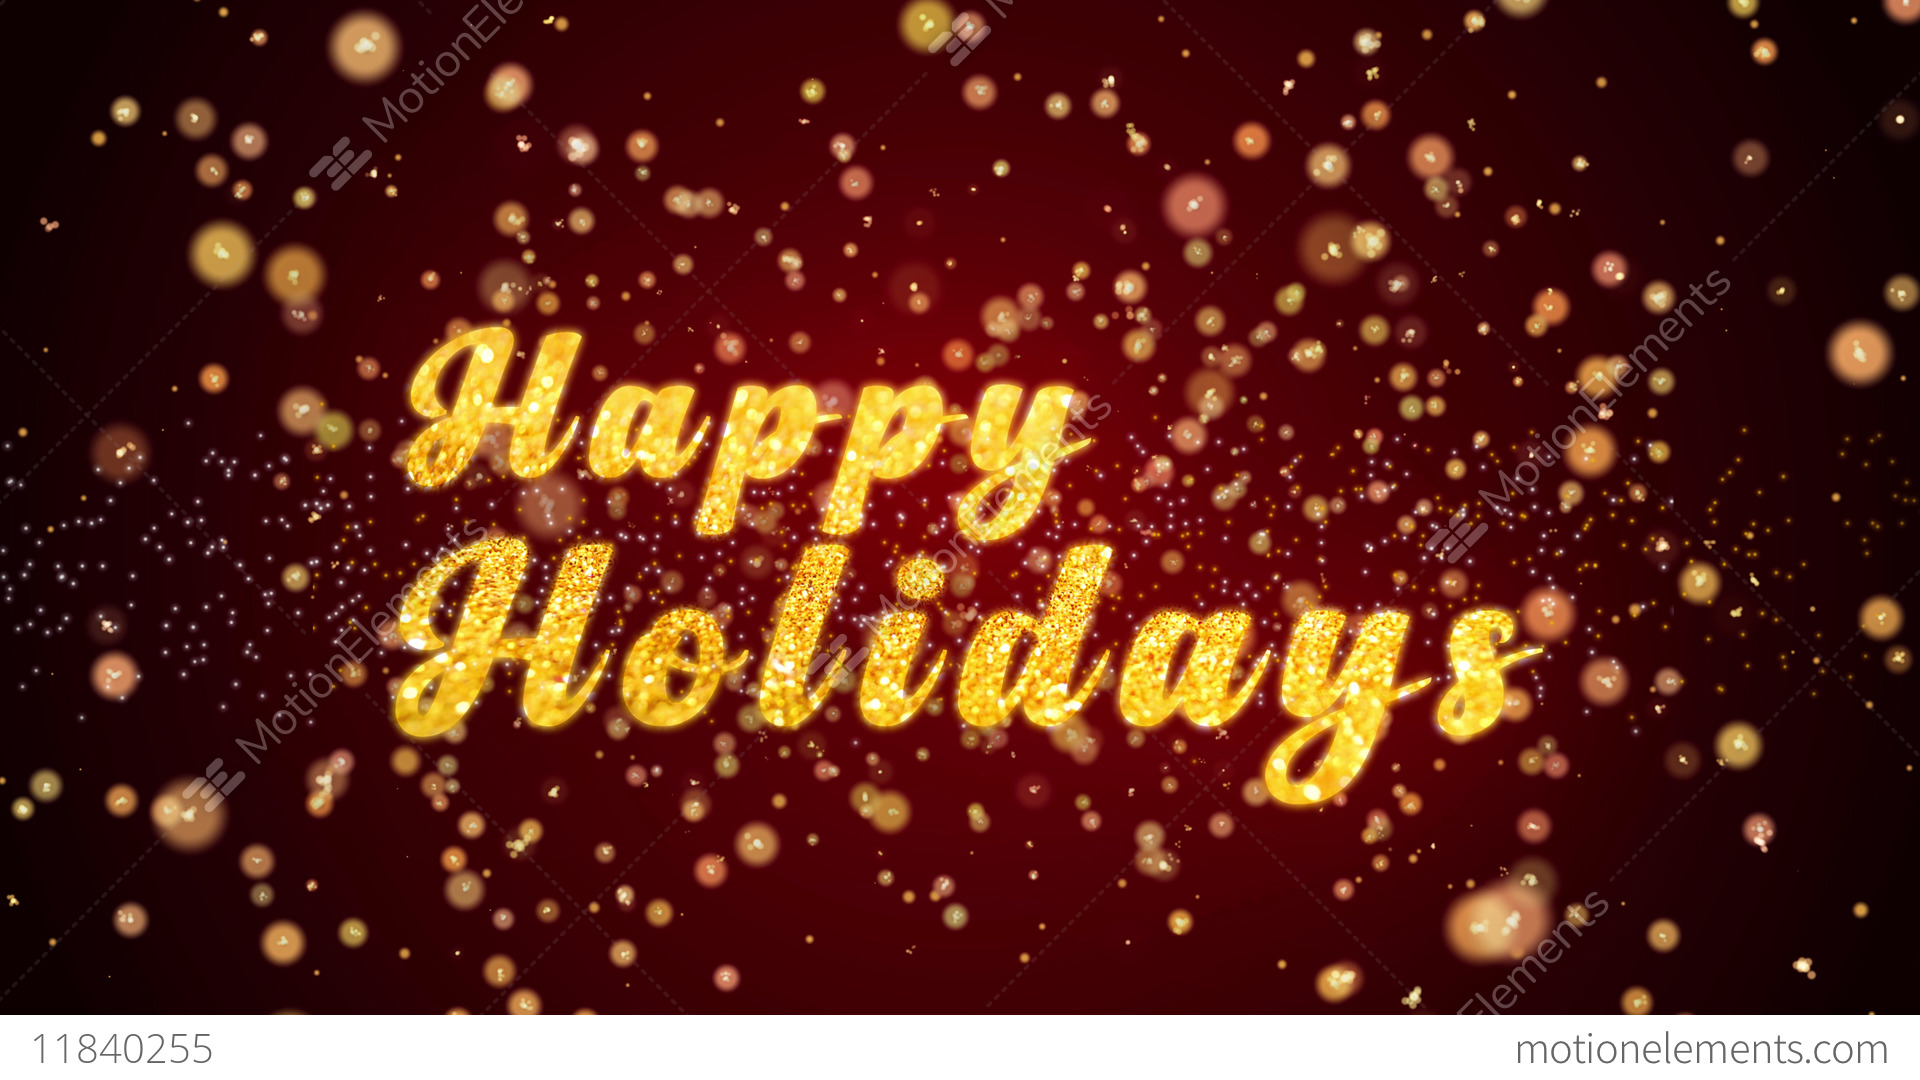 Happy Holidays Greeting Card Text Shiny Particles For Celebration